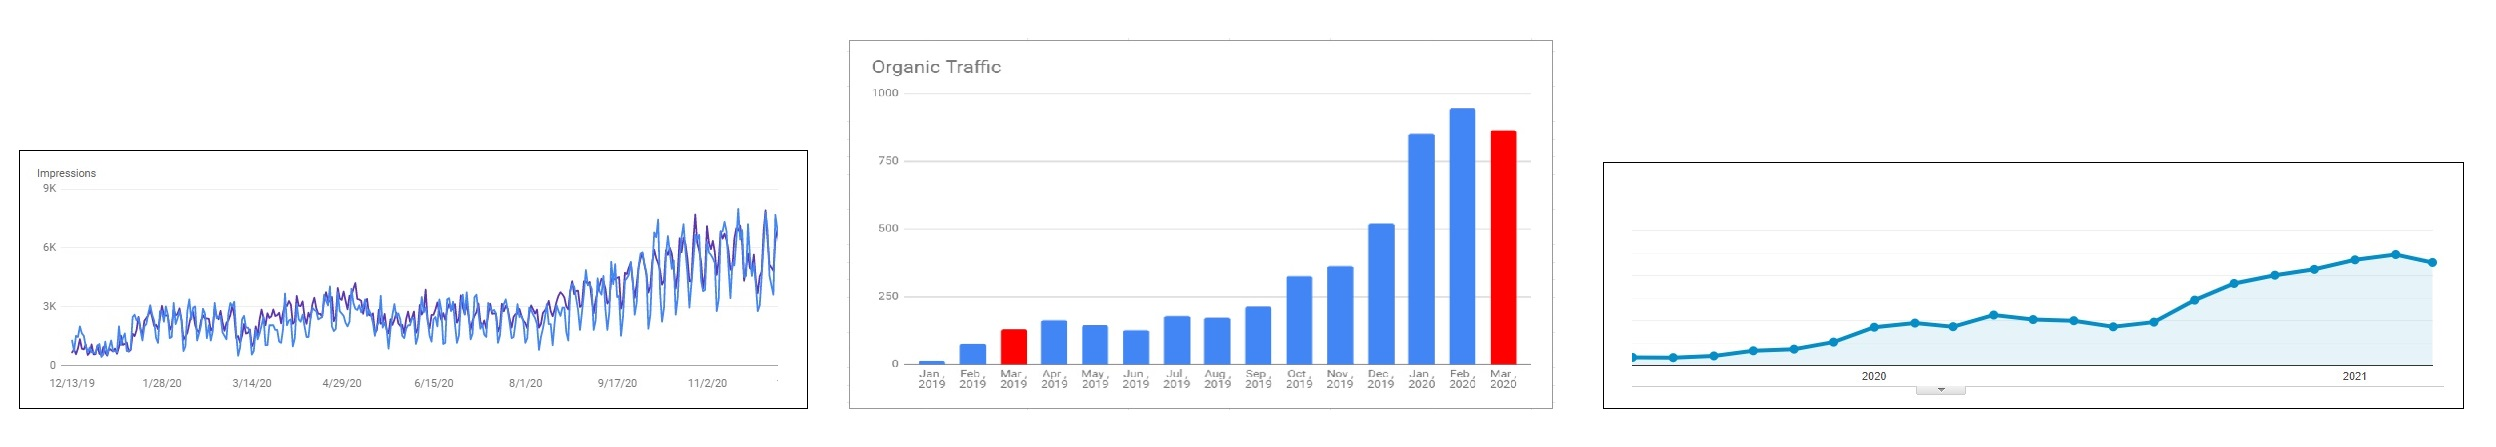 organic traffic growth over time